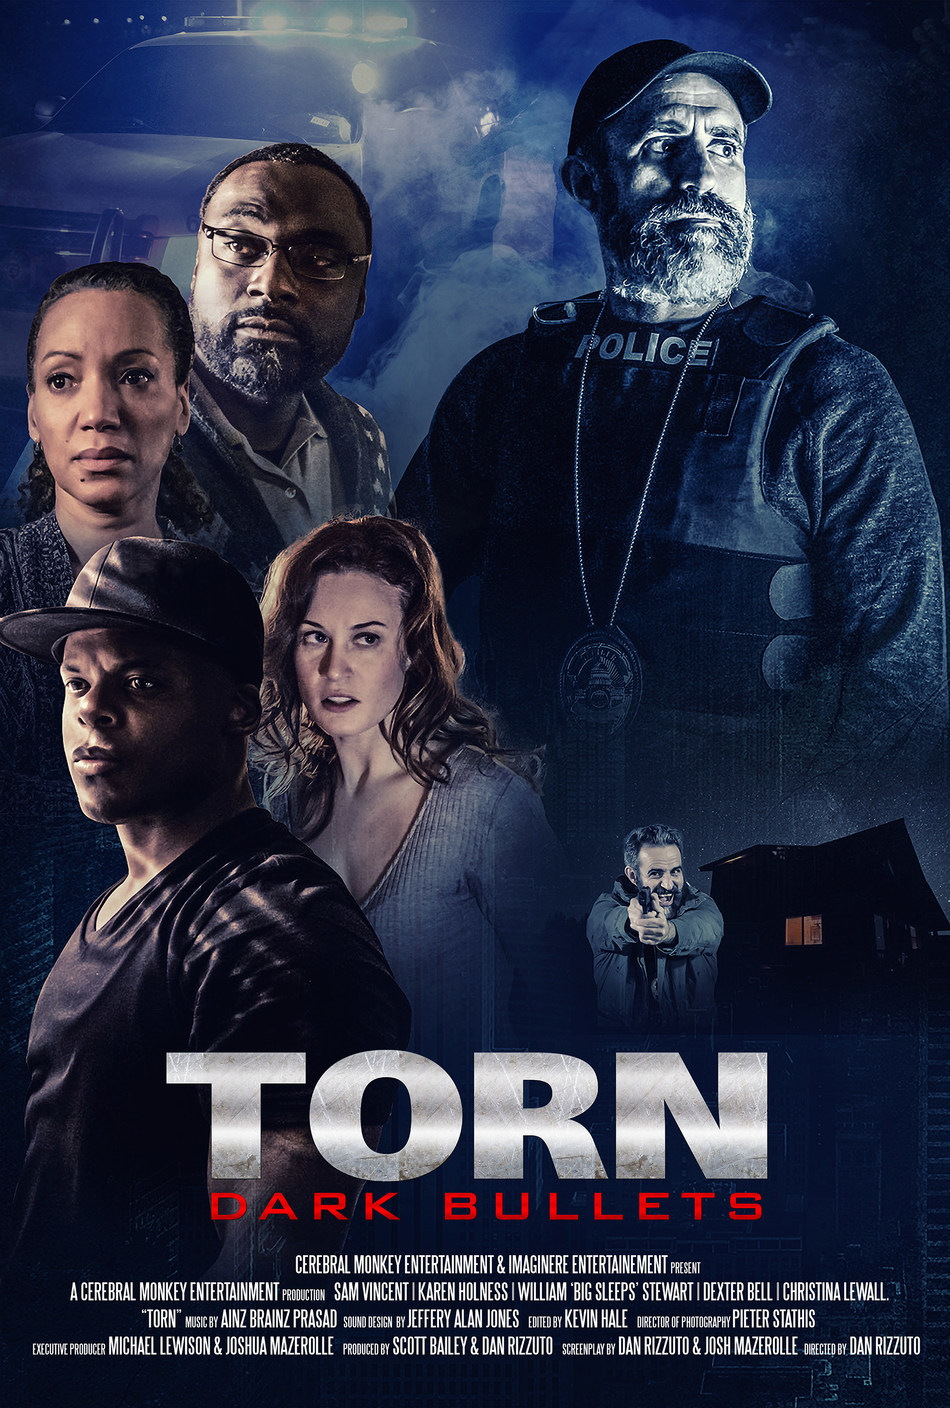 Torn Dark Bullets Official Poster (CNW Group/Imagin•ere Entertainment)